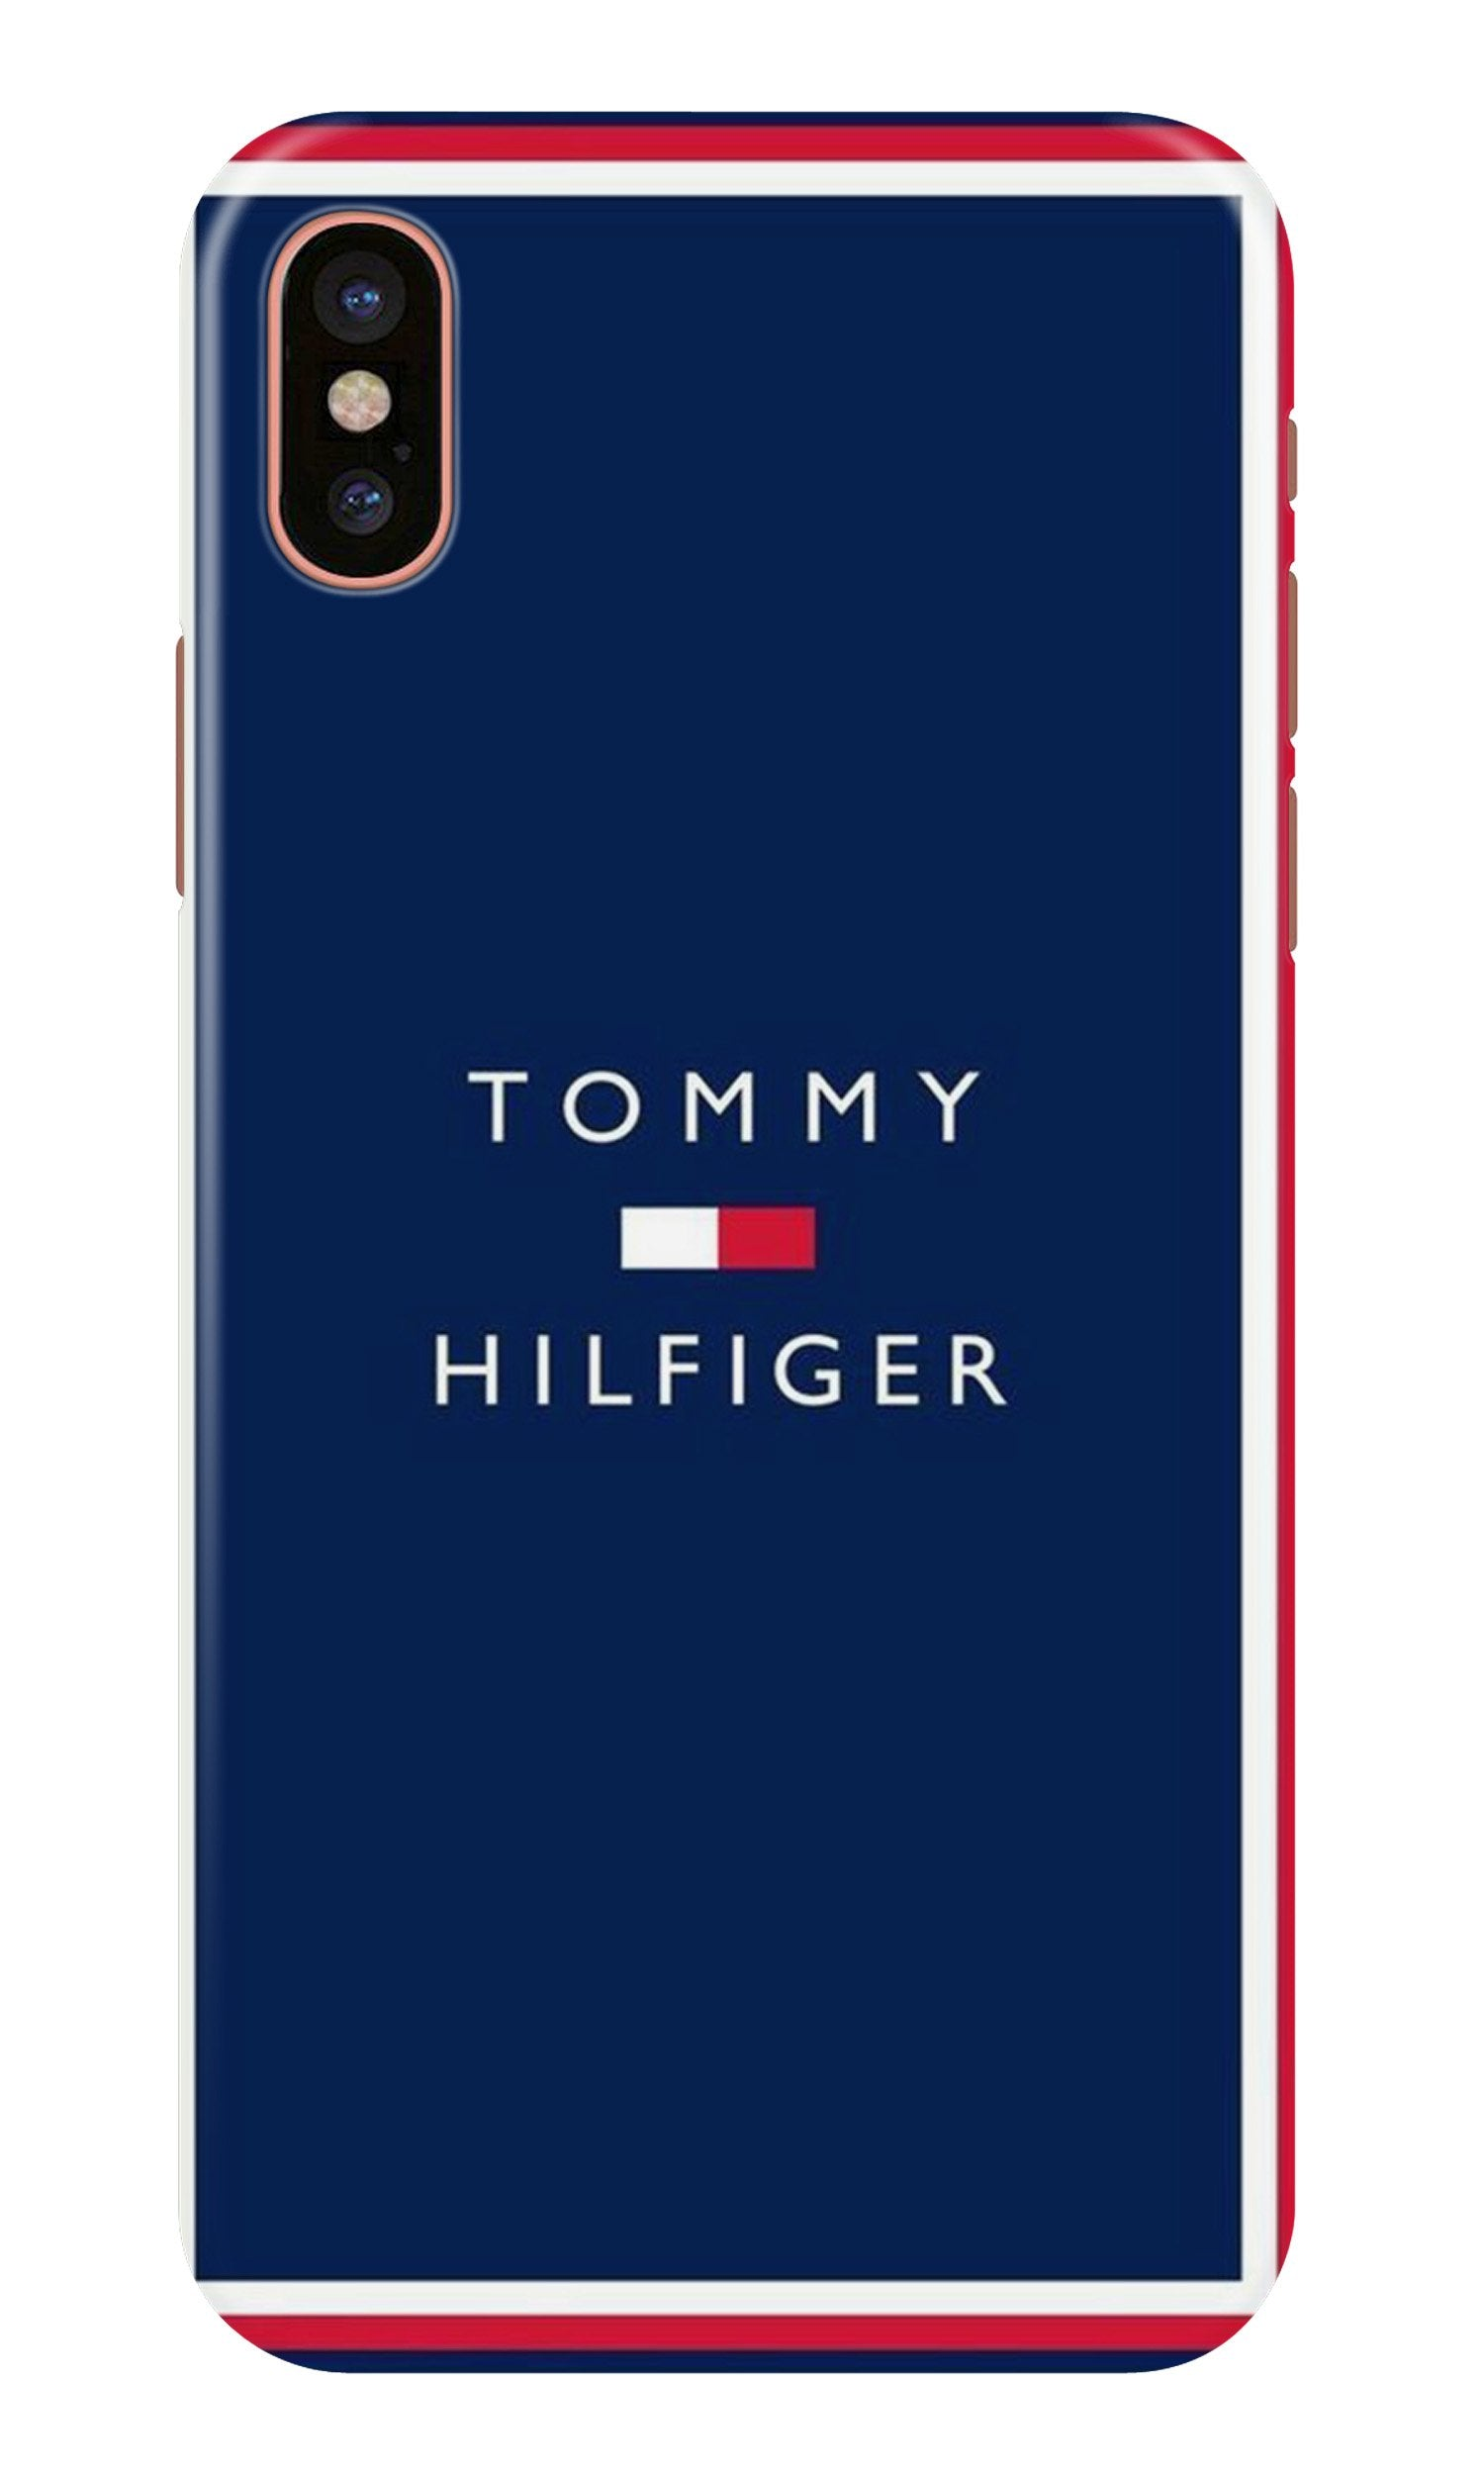 Tommy Hilfiger Case for iPhone X (Design No. 275)